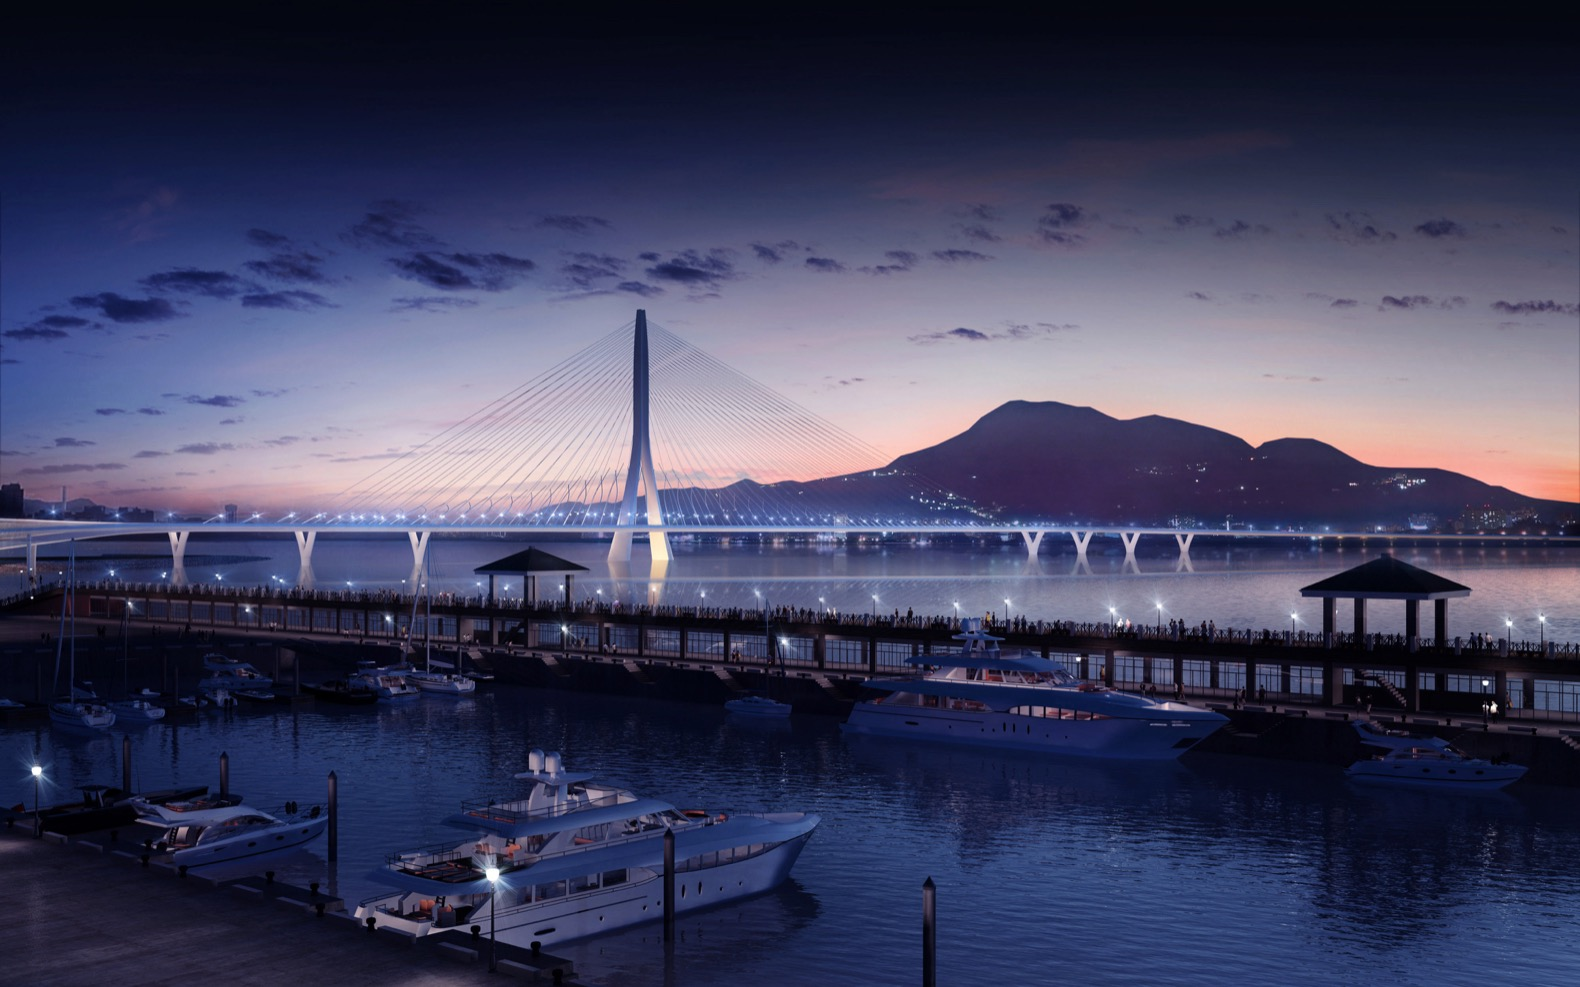 Zaha Hadid Architects breaks ground on an eco-sensitive multimodal bridge in Taiwan